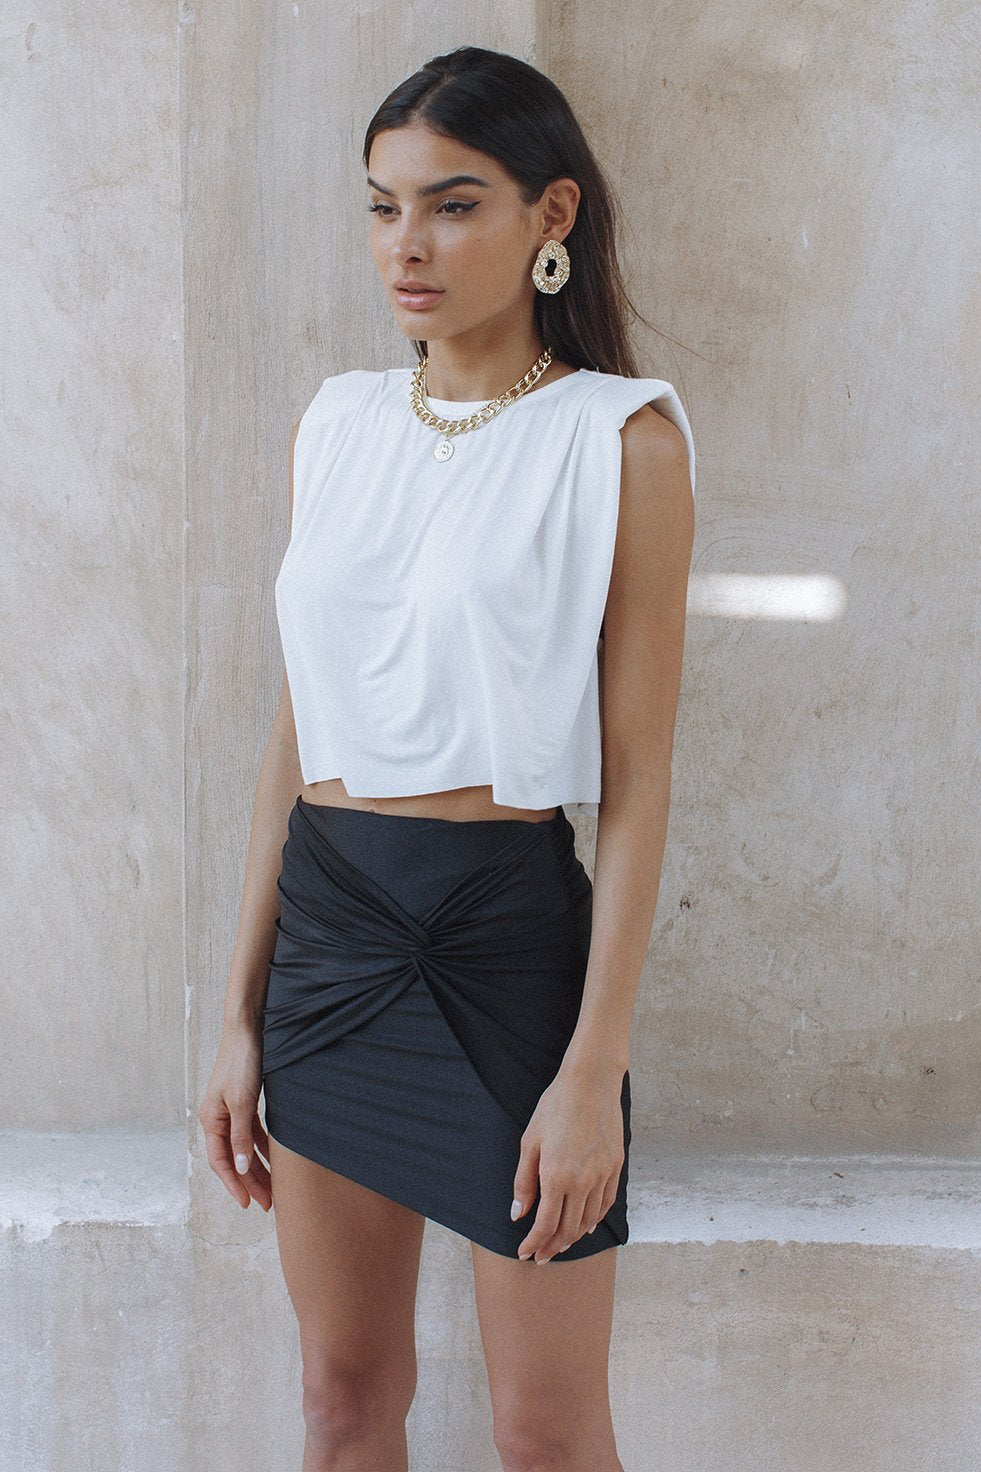 ST TROPEZ CROP TOP - WHITE (6246558367922)